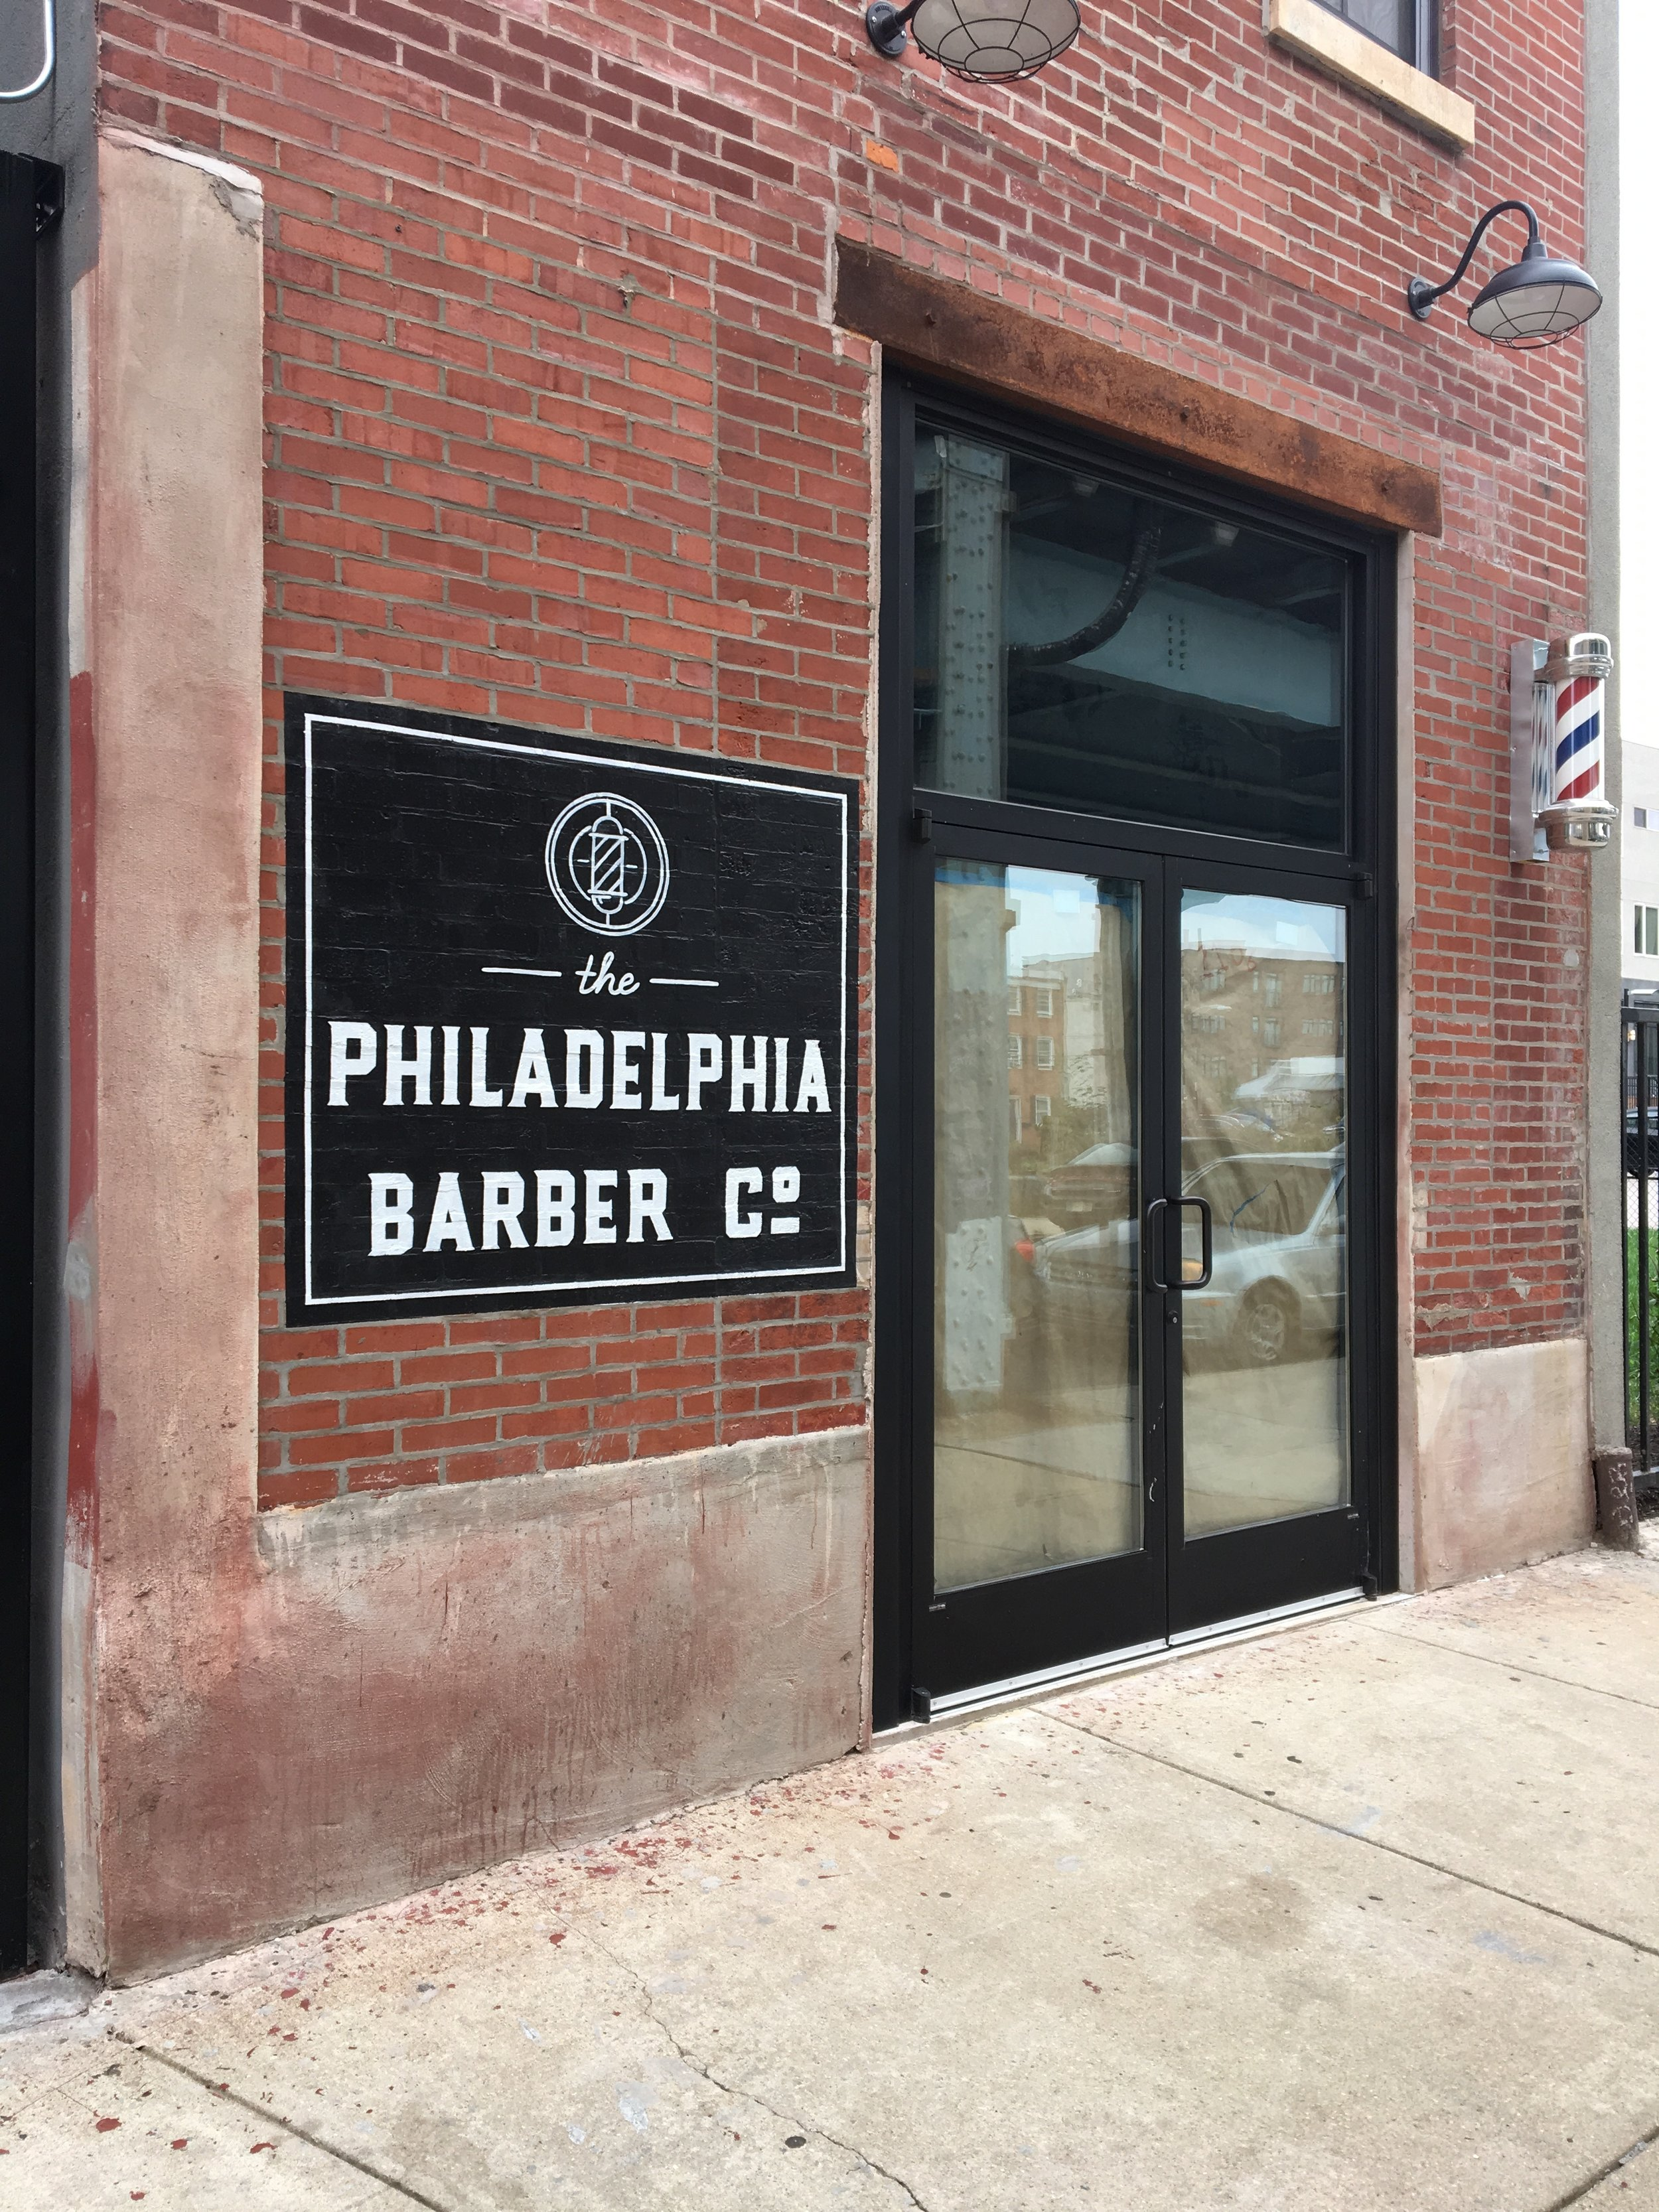 SIGN PAINTING - The Philadelphia Barber Co.